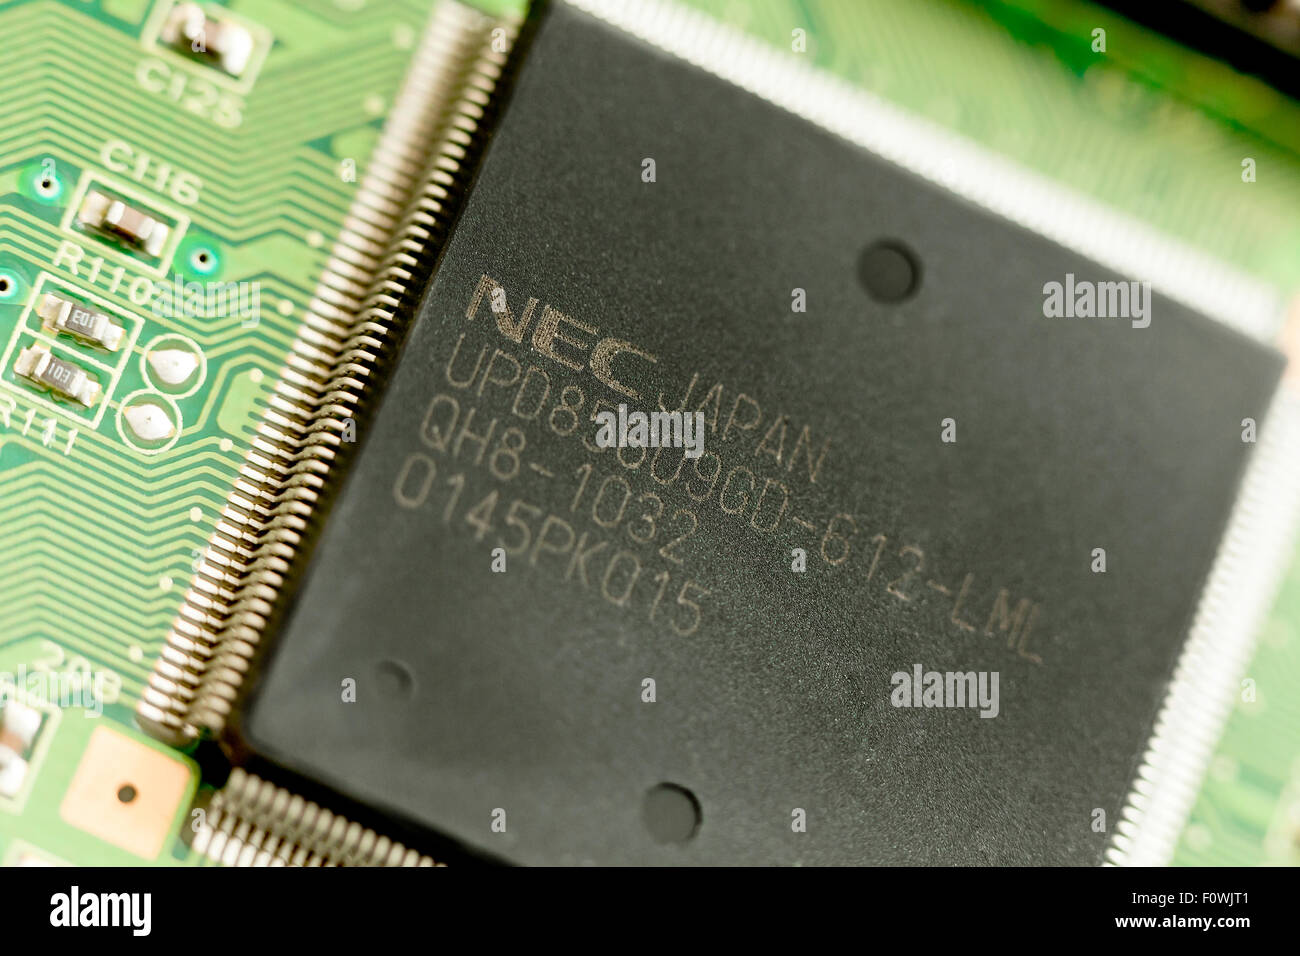 NEC USB controller on printer circuit board - Stock Image